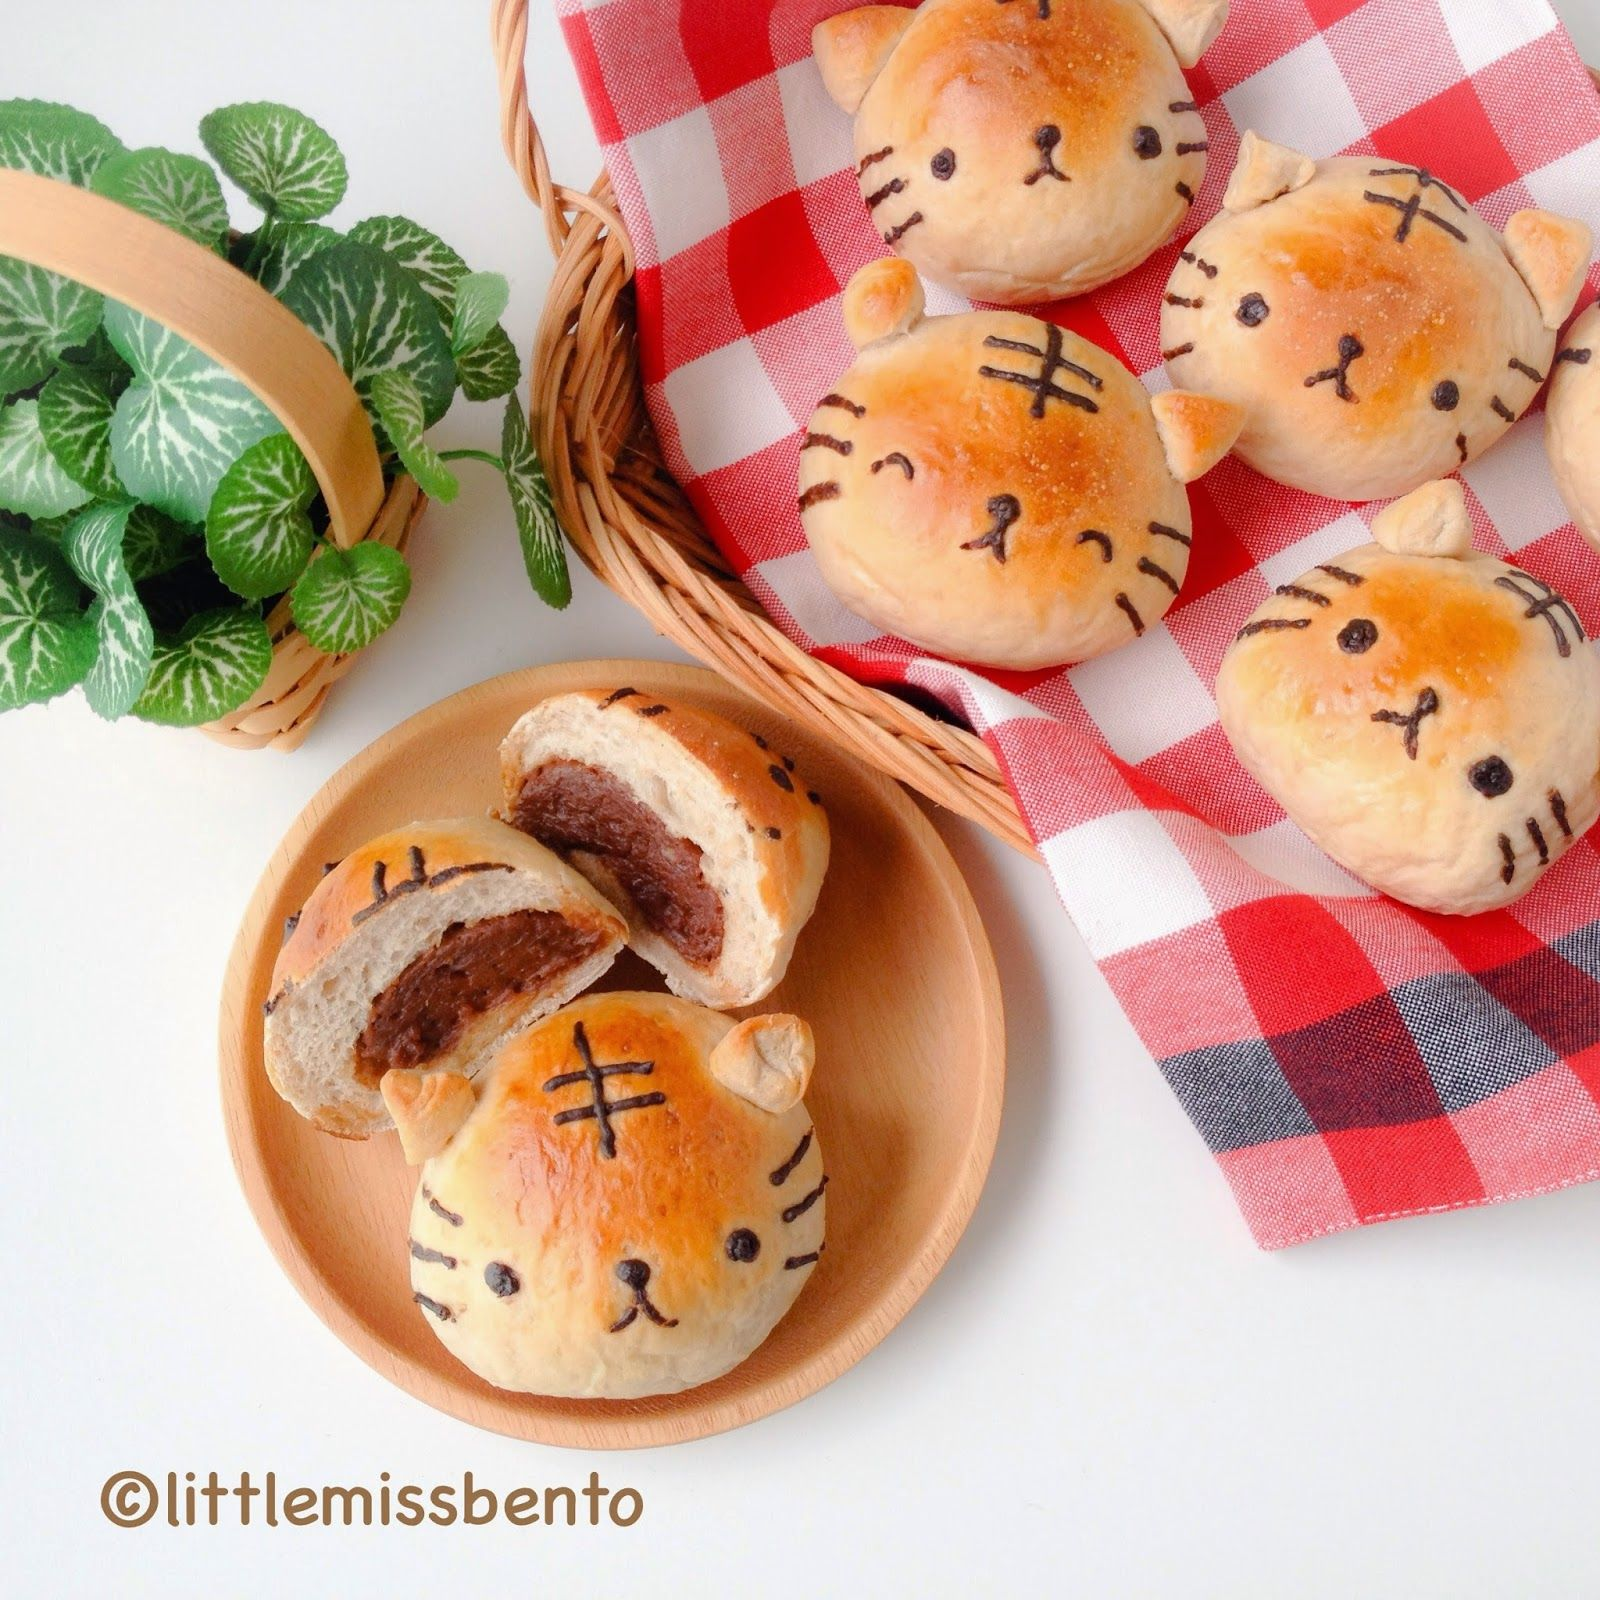 Little Miss Bento シャリーのかわいいキャラベン: Recipe Homemade Milo Bread Buns - Cute Tiger Buns ... Kawaii food